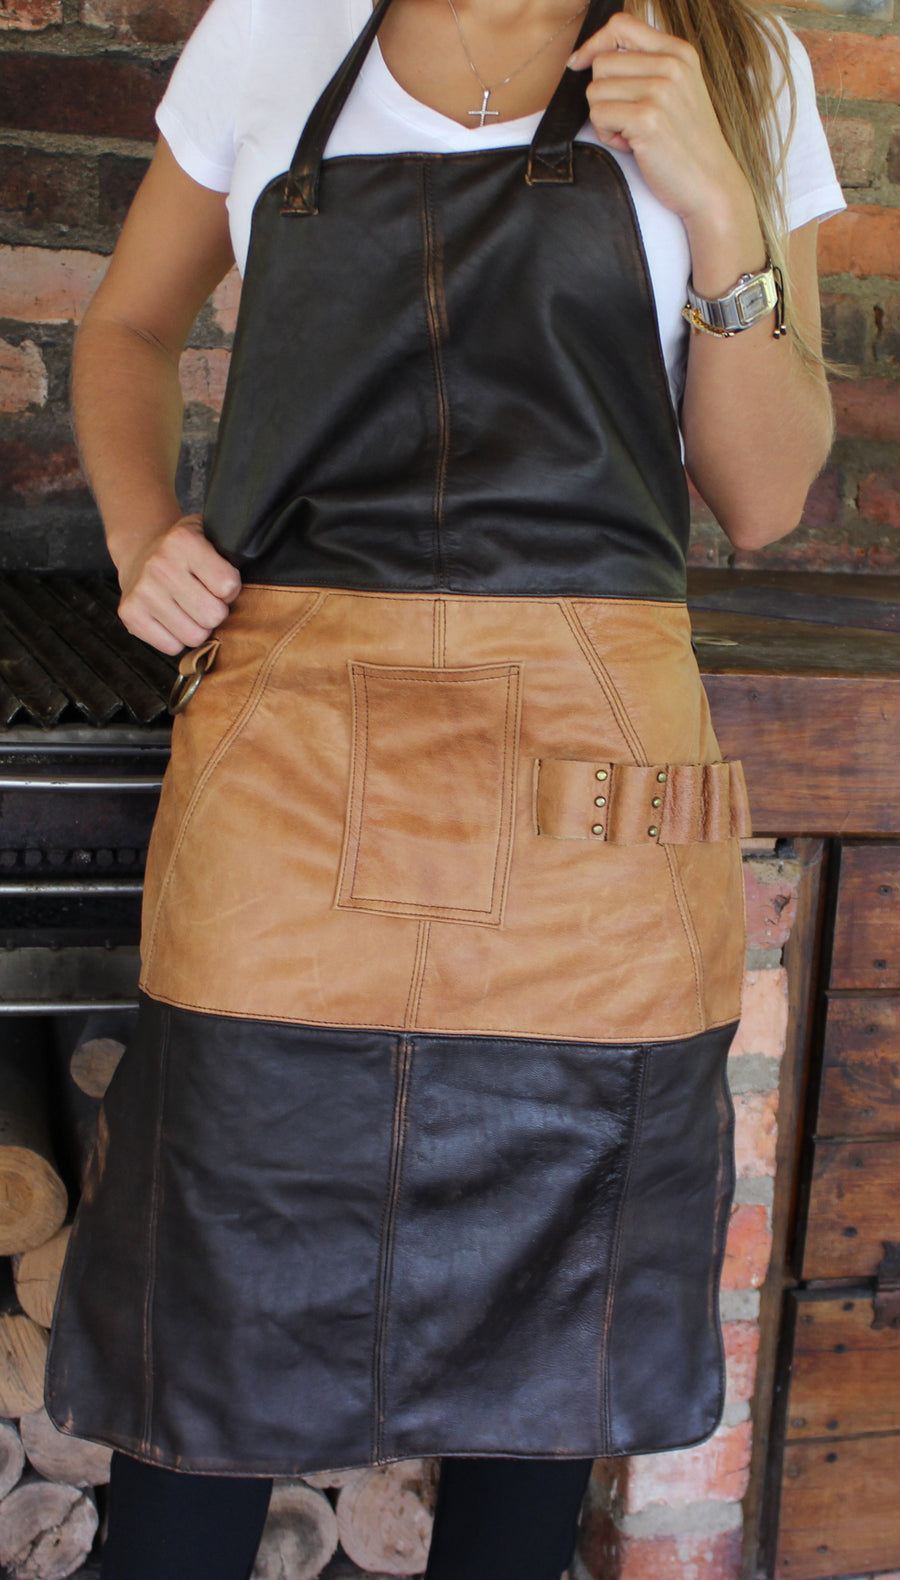 NATHAN Leather Apron in - Dark Brown and Tan Custom-made BBQ Restaurant fashion Name Initials - PDCollection Leatherwear - Online Shop